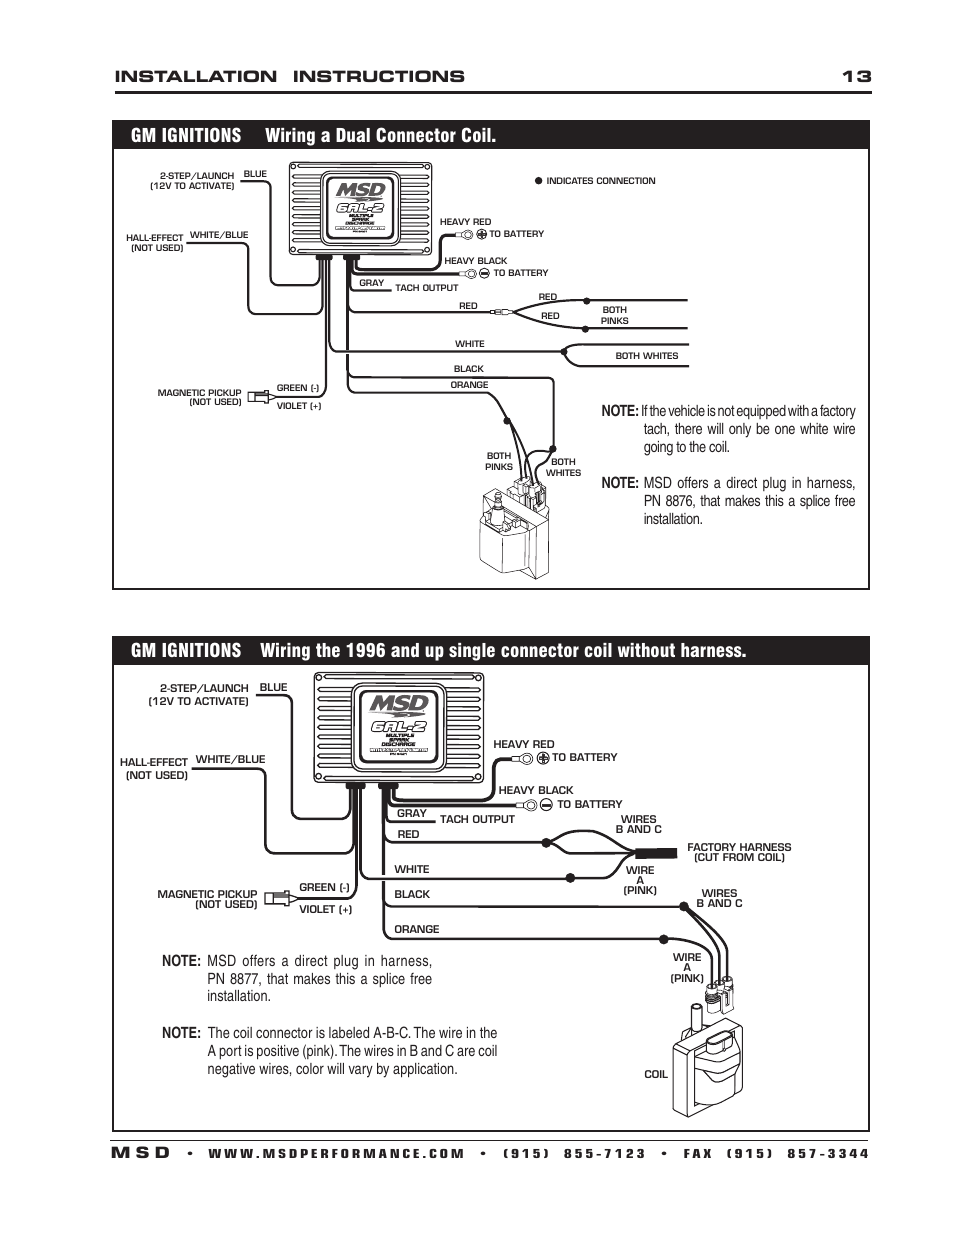 Gm Ignitions Wiring A Dual Connector Coil  Installation Instructions 13 M S D